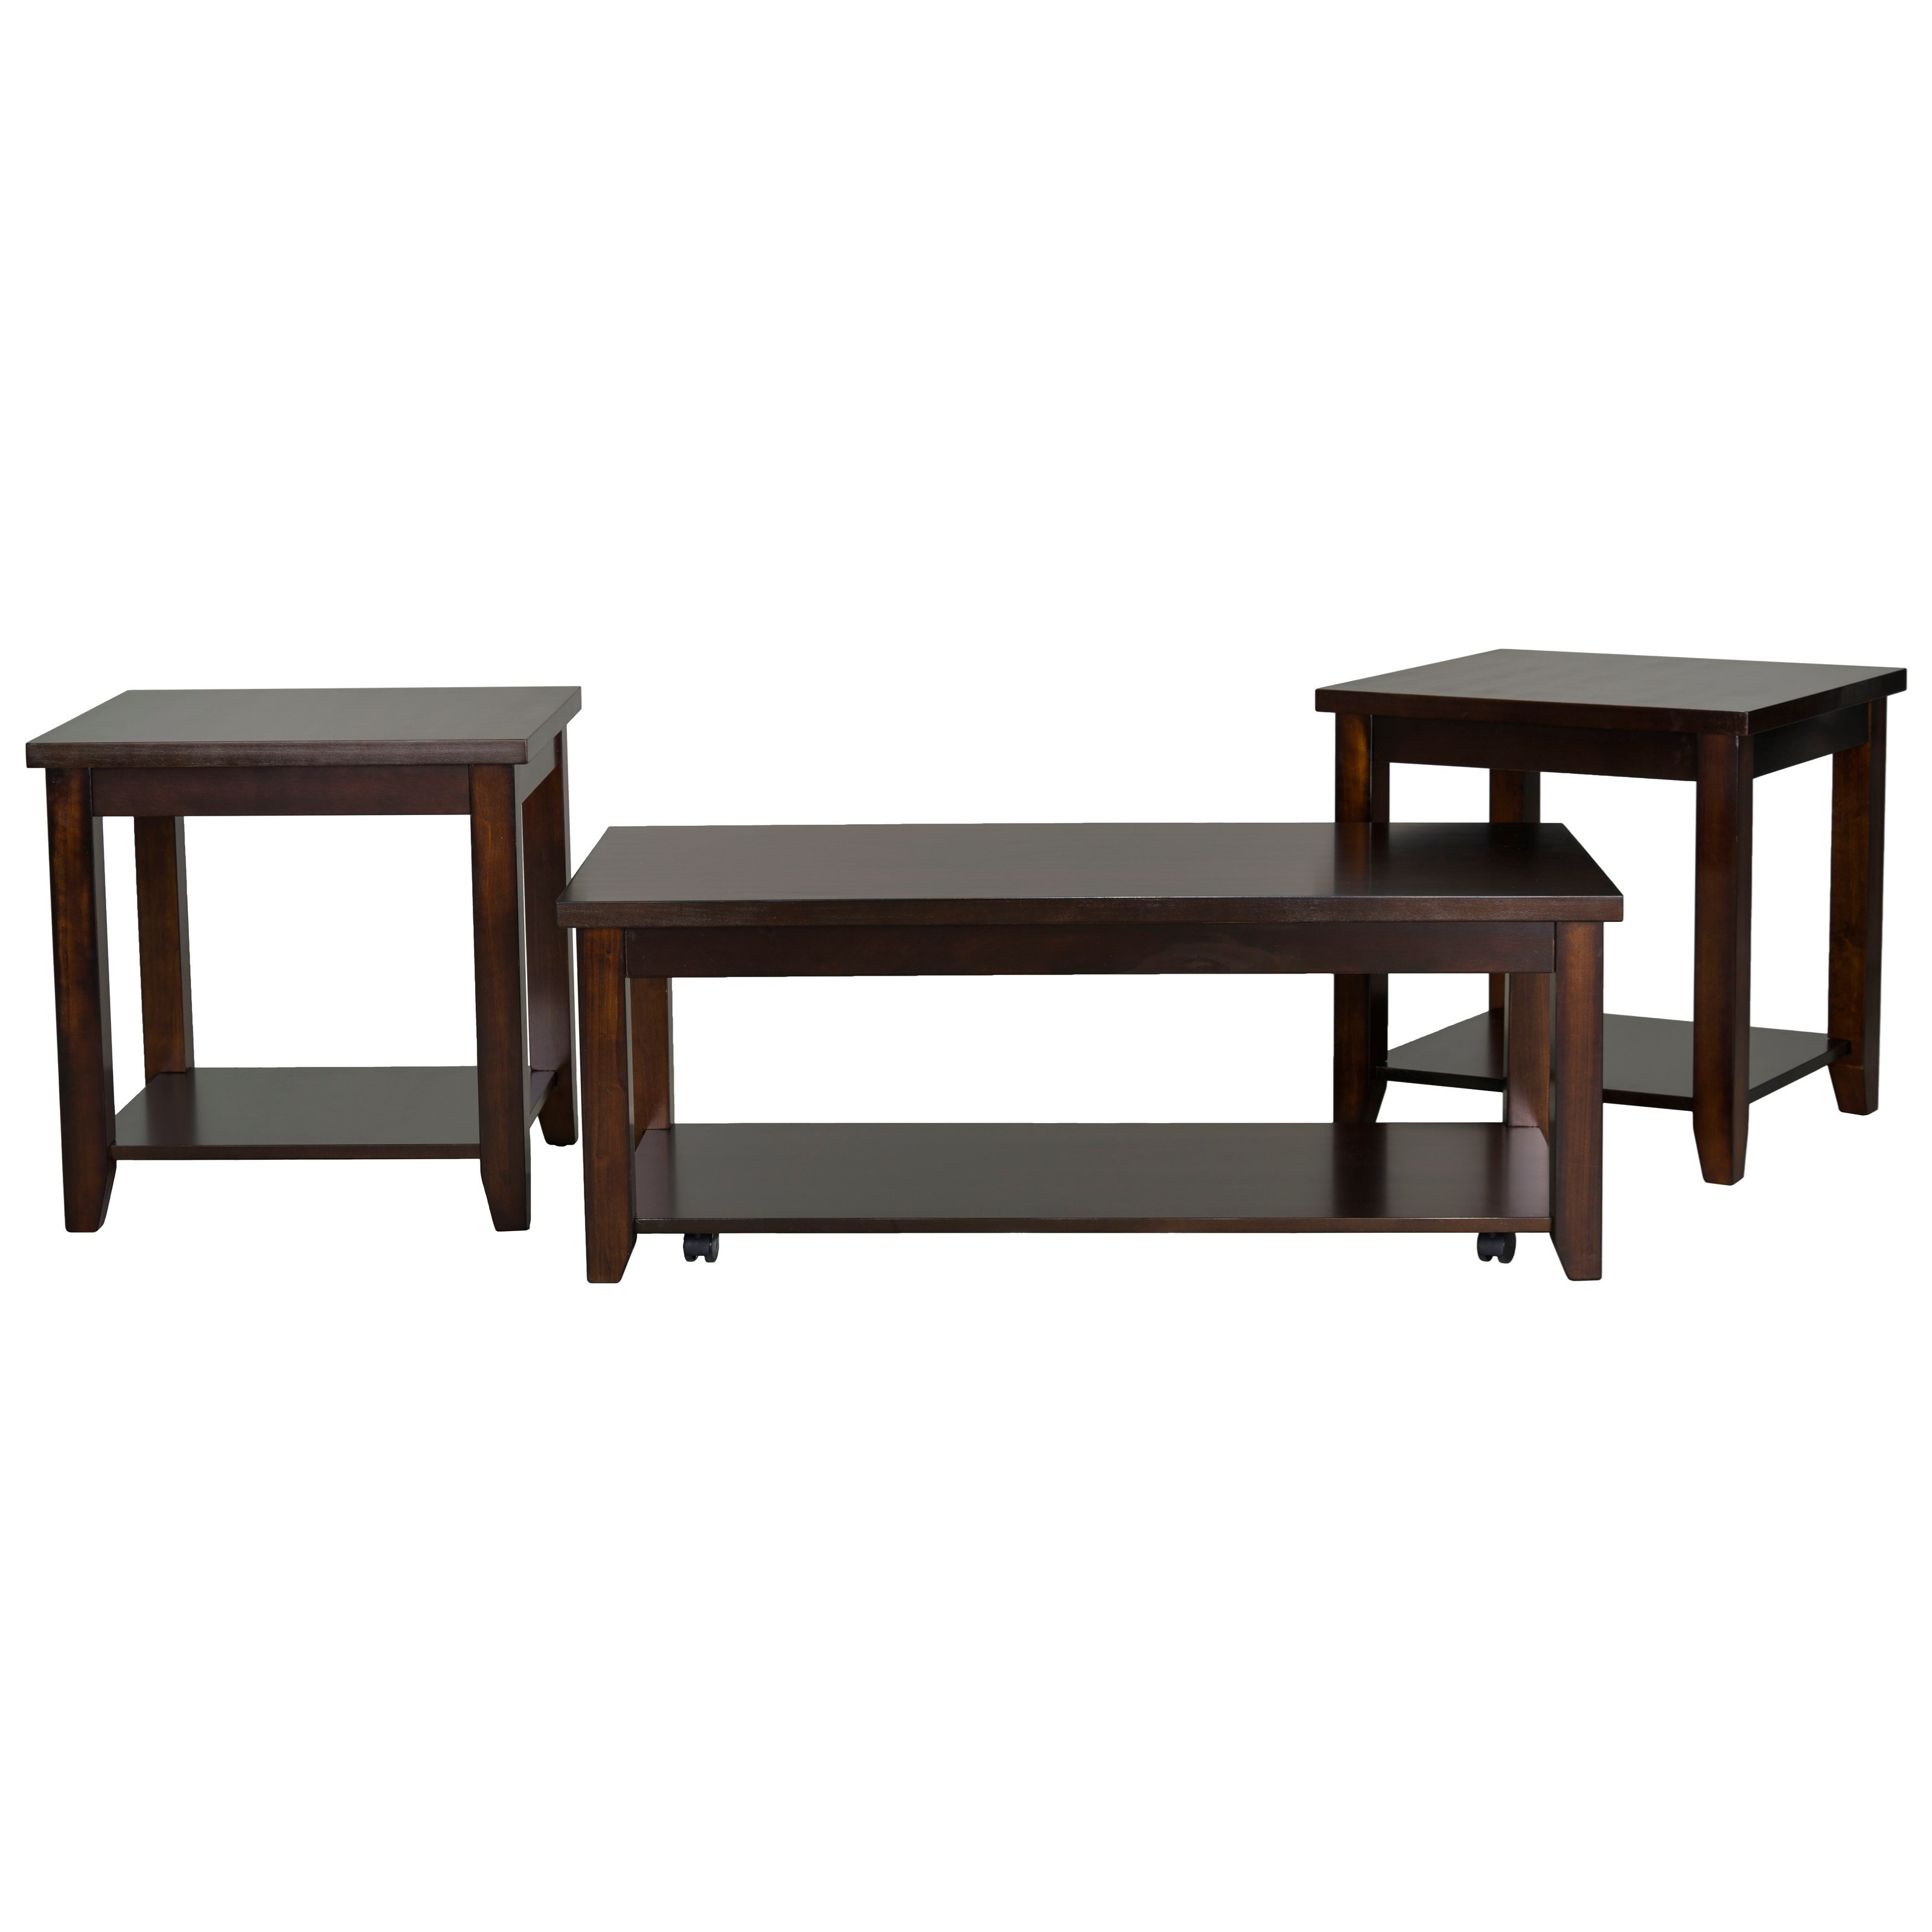 Richmond Occasional Table Group by Standard Furniture at Rooms for Less